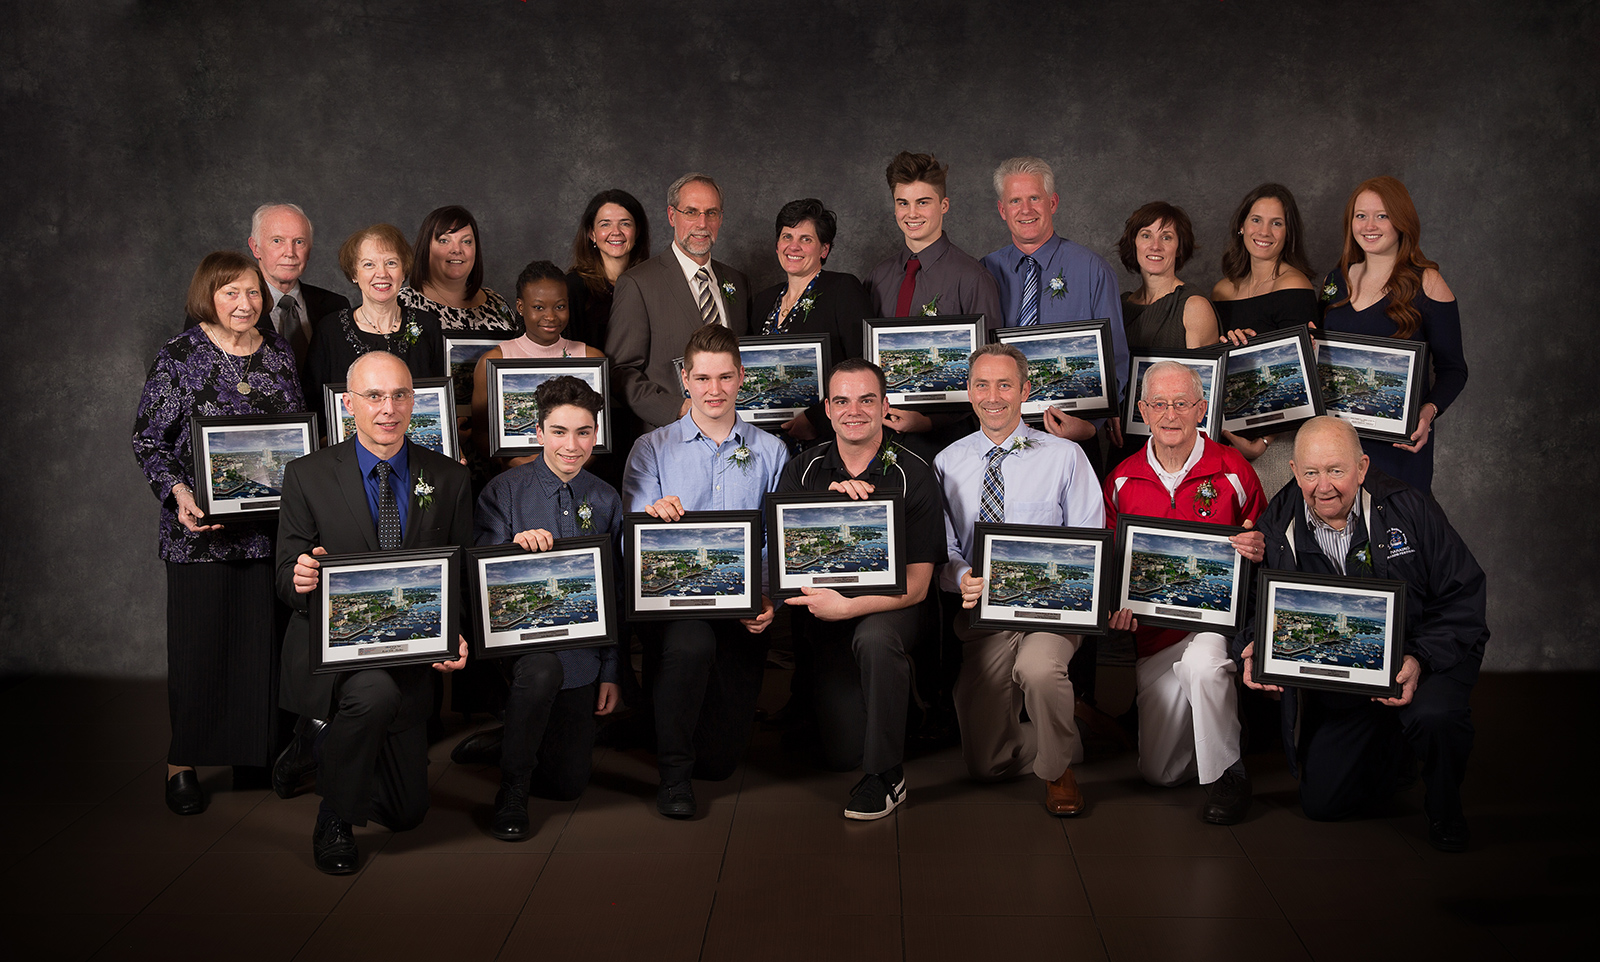 Winners of the 2017 Nanaimo Sports Achievement Awards